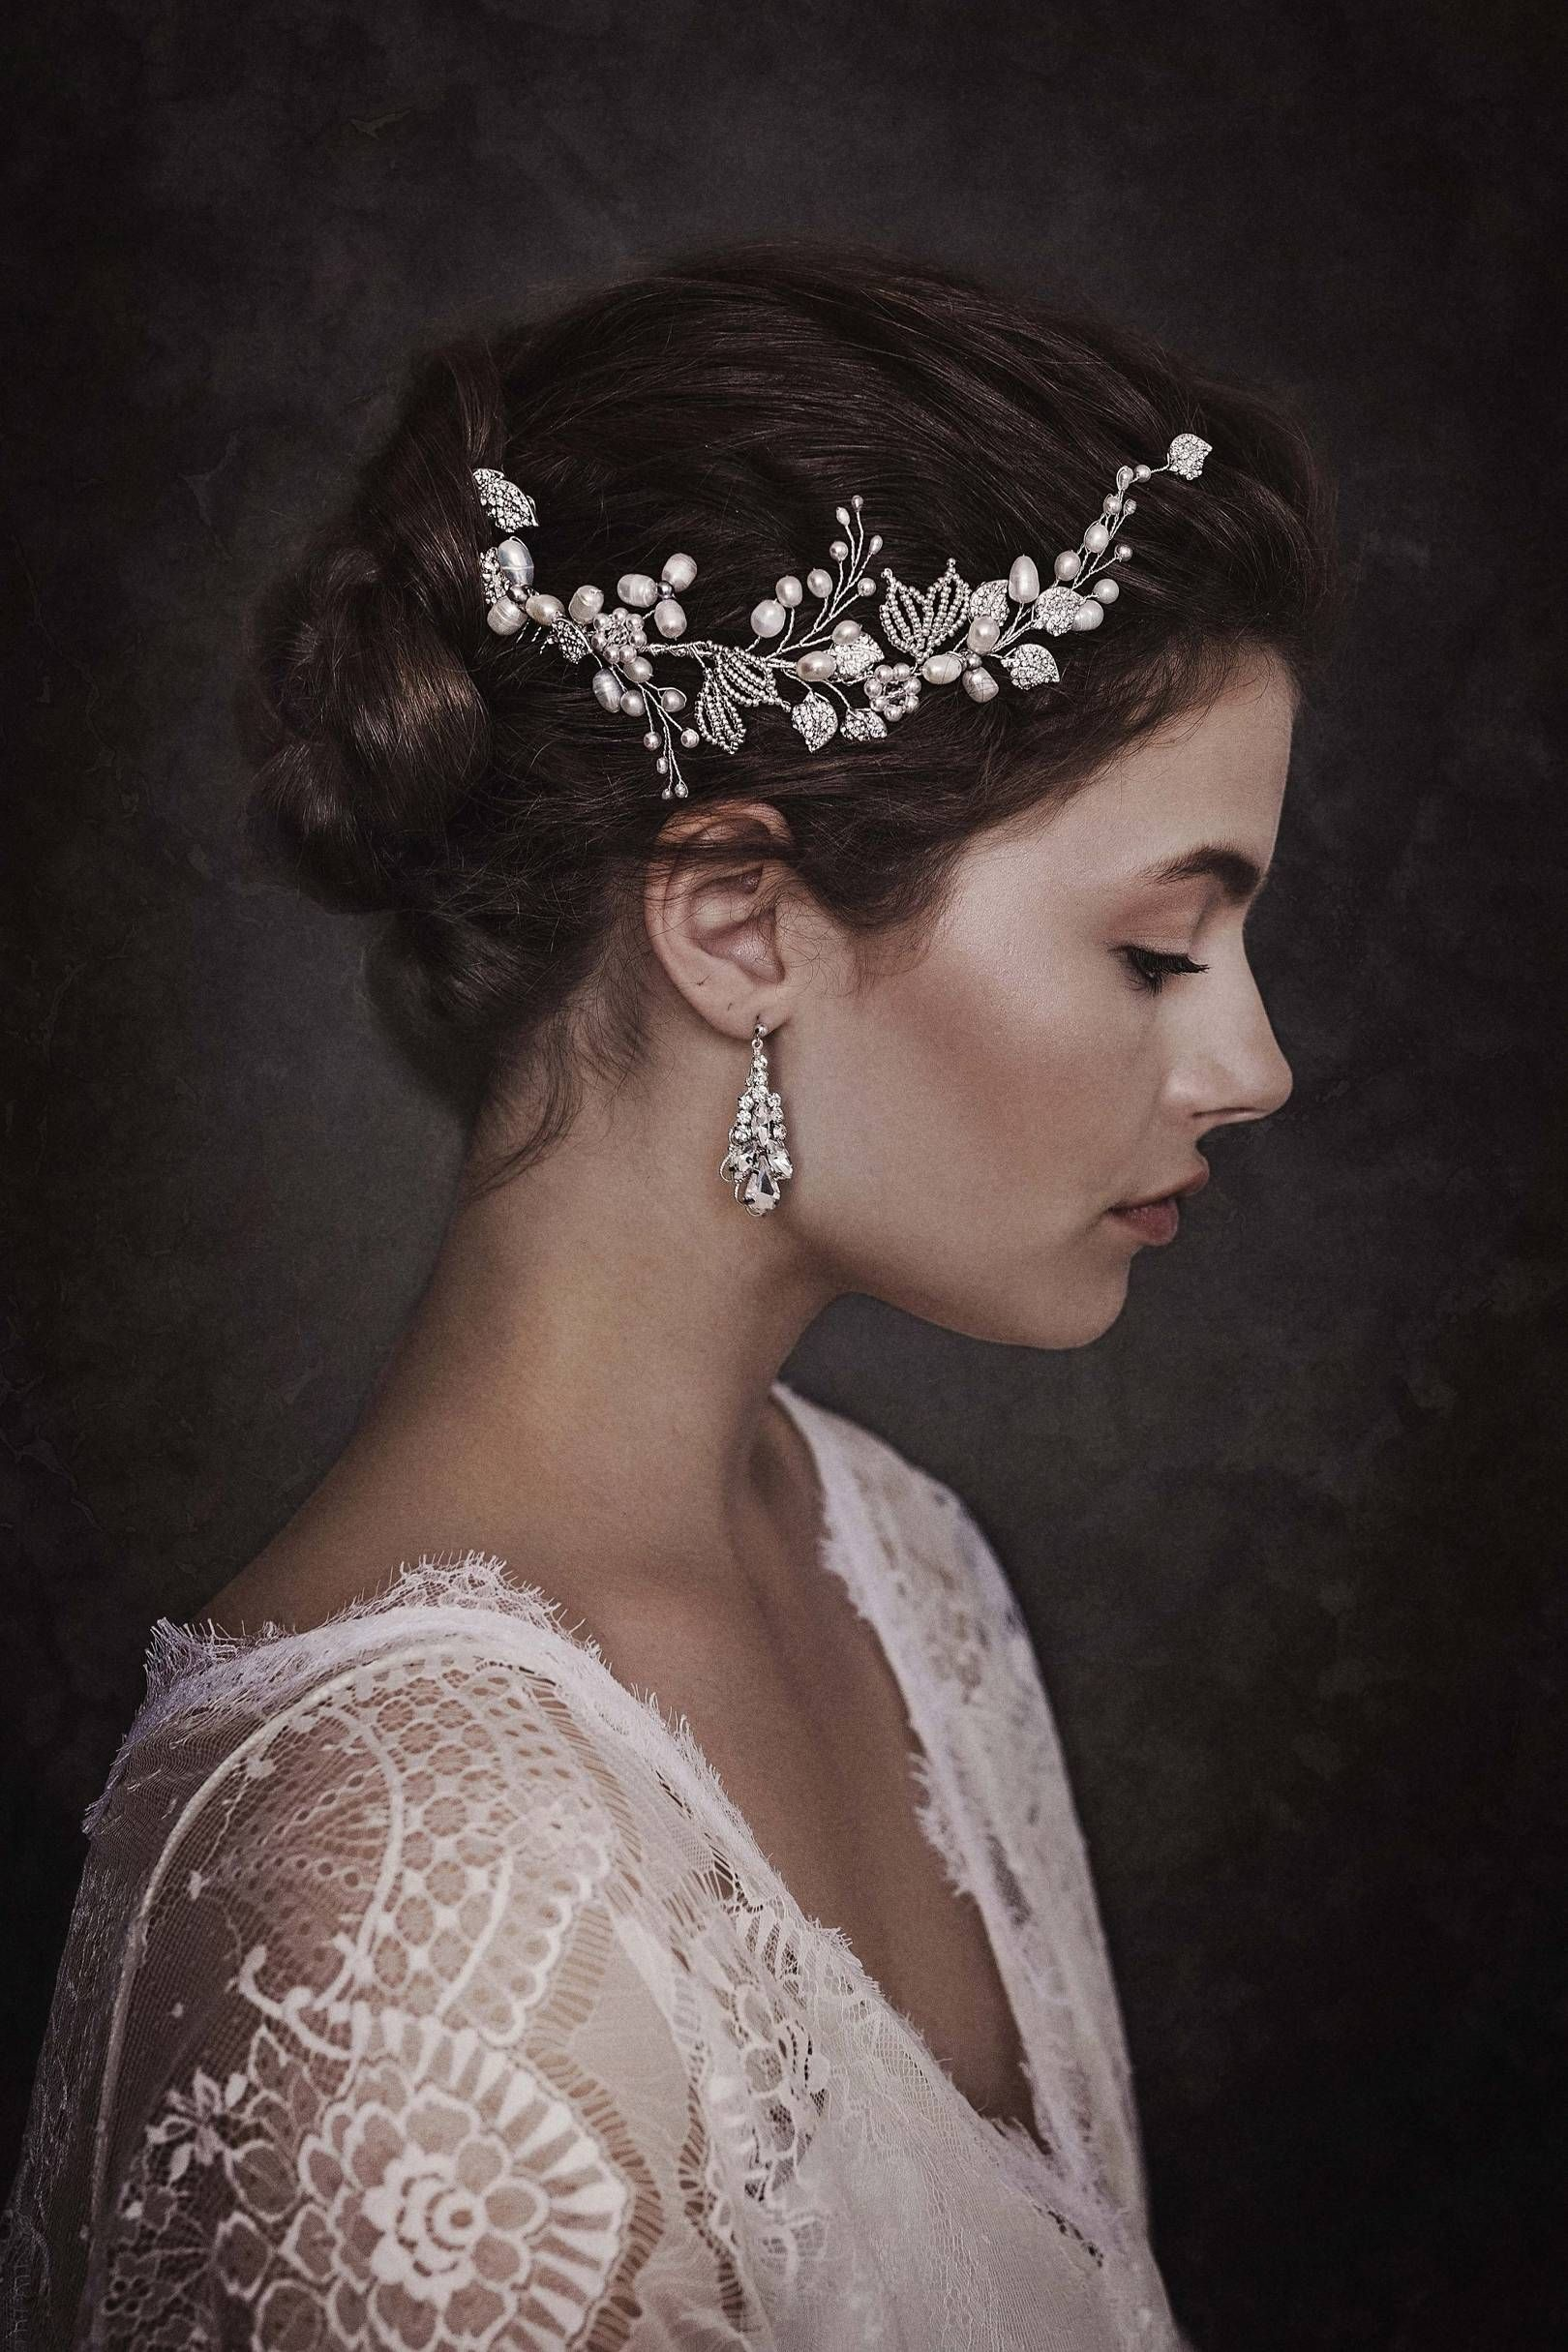 50 Wedding Hair Accessories You'll Need For The BigDay